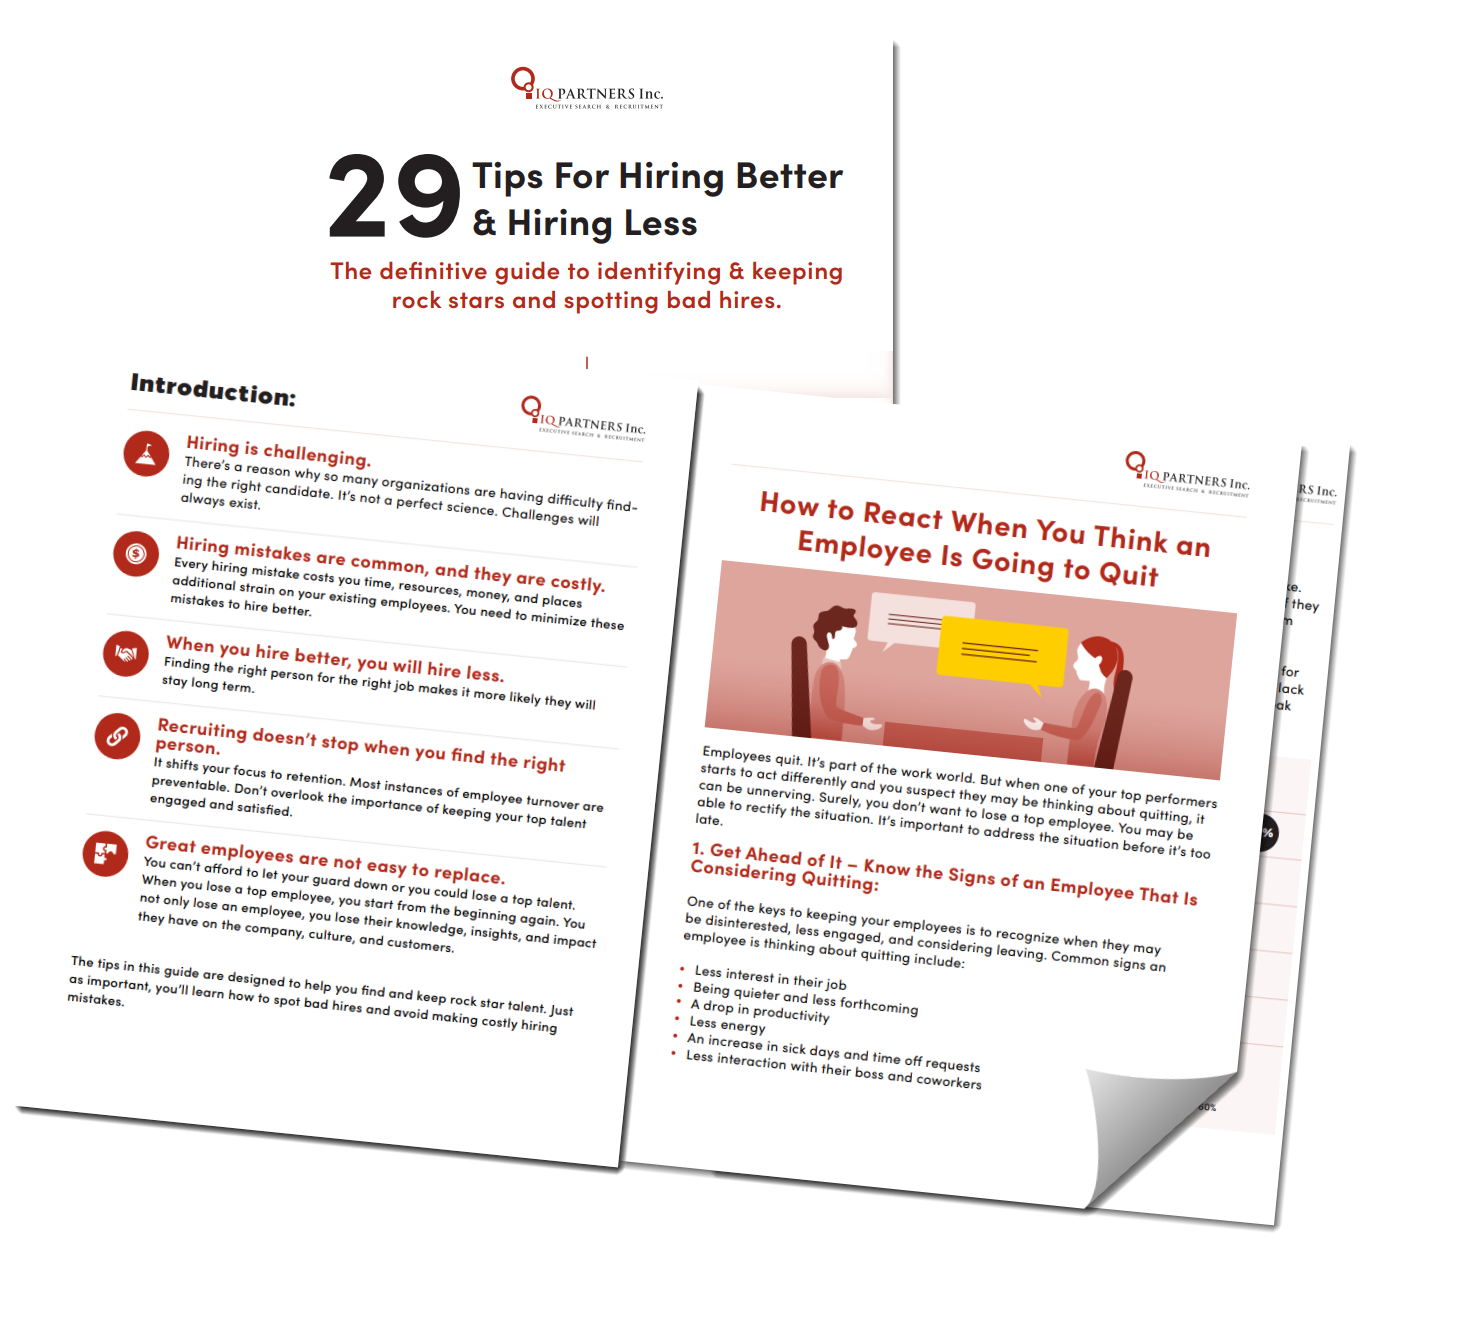 29 Tips For Hiring Better & Hiring Less